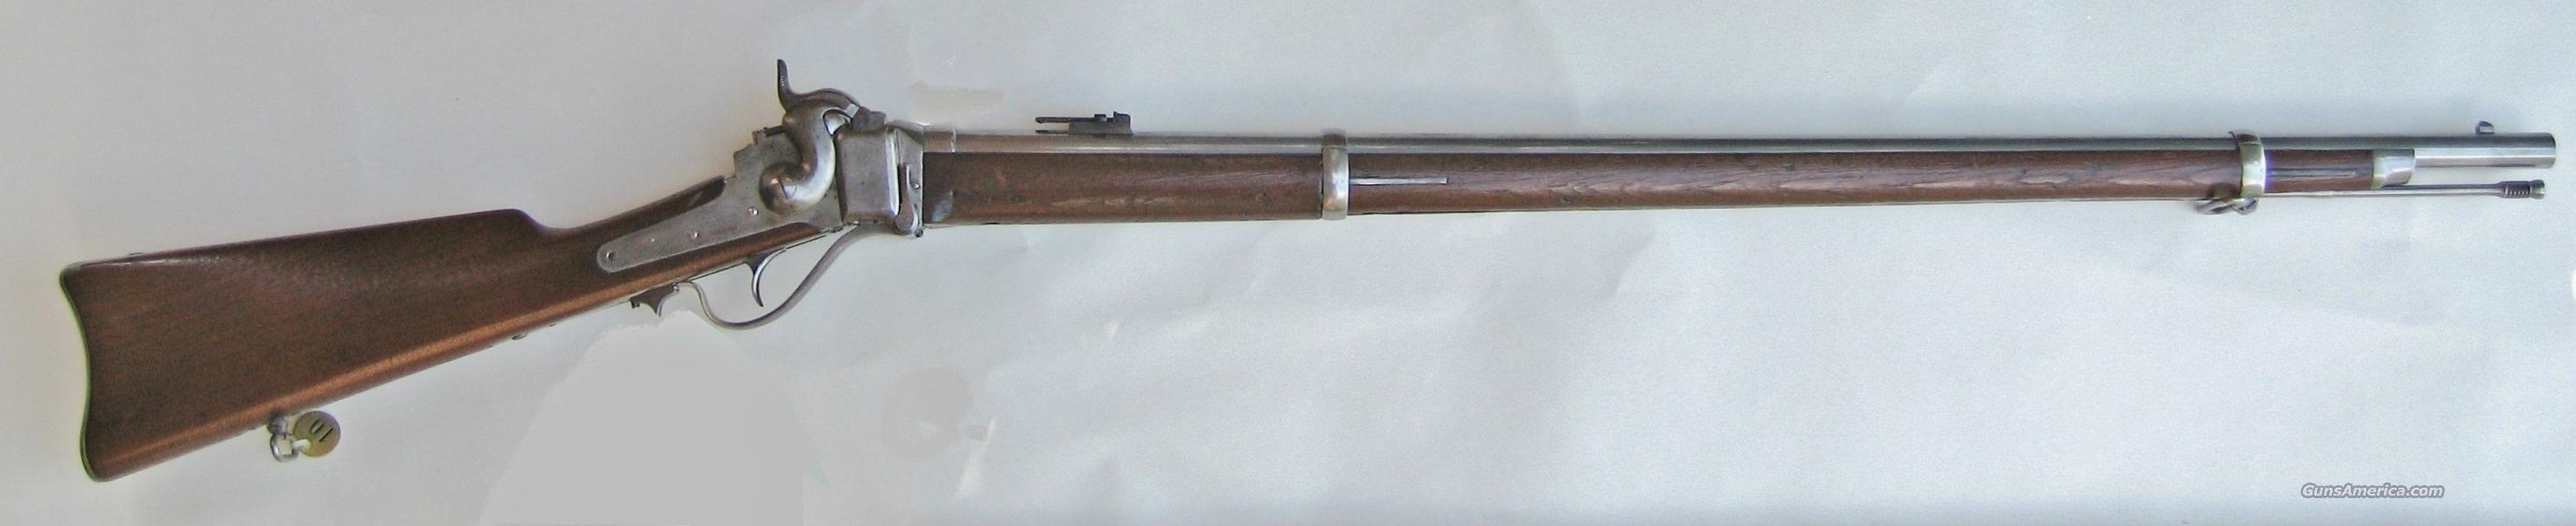 M1870 SPRINGFIELD SHARPS TRIAL RIFLE – TYPE 1  Guns > Rifles > Sharps Rifles - Pre-1899